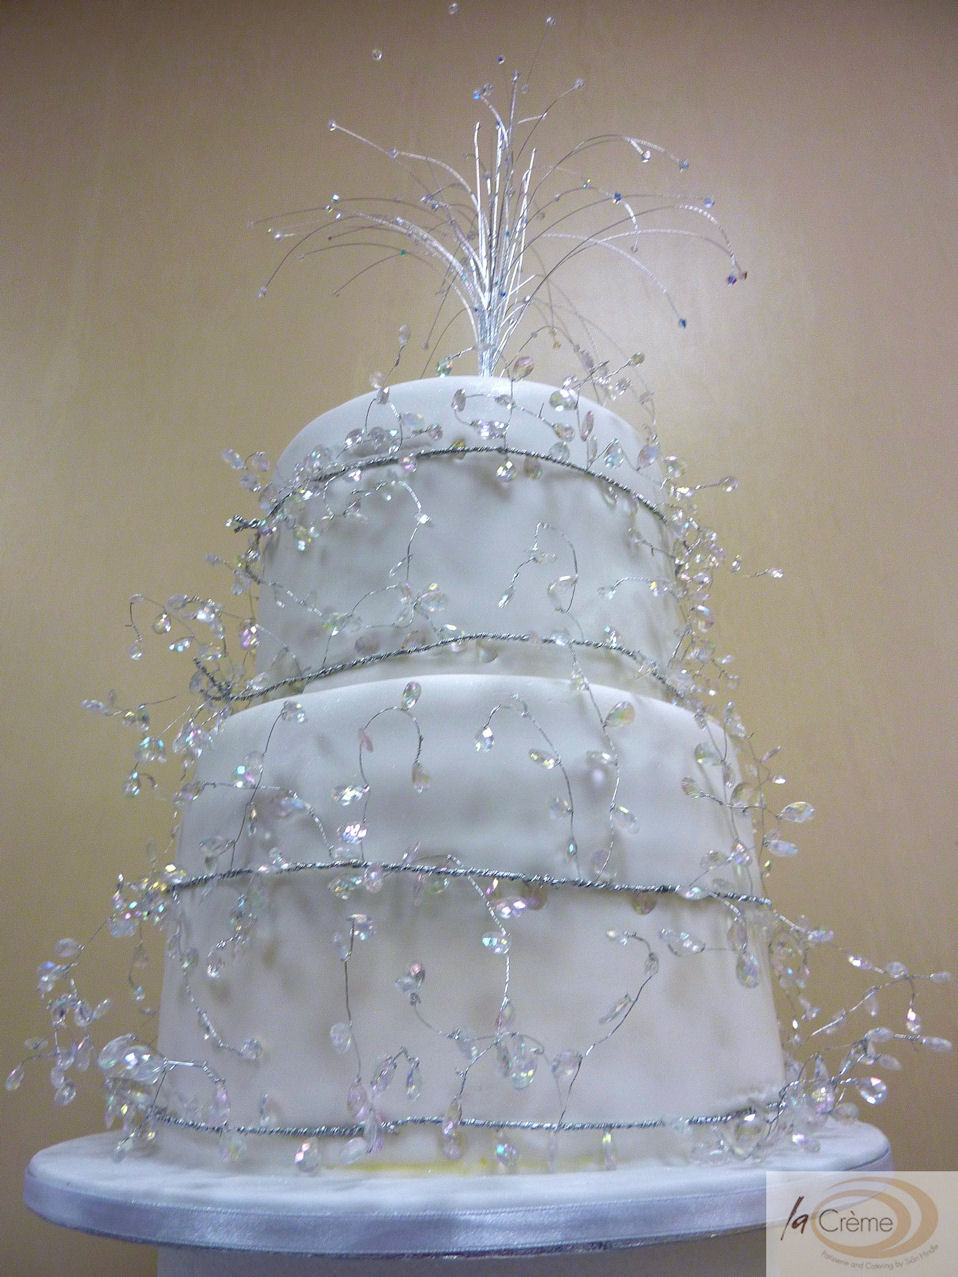 La Creme 2 Tier Large Wedding Cake With Beaded Decorati